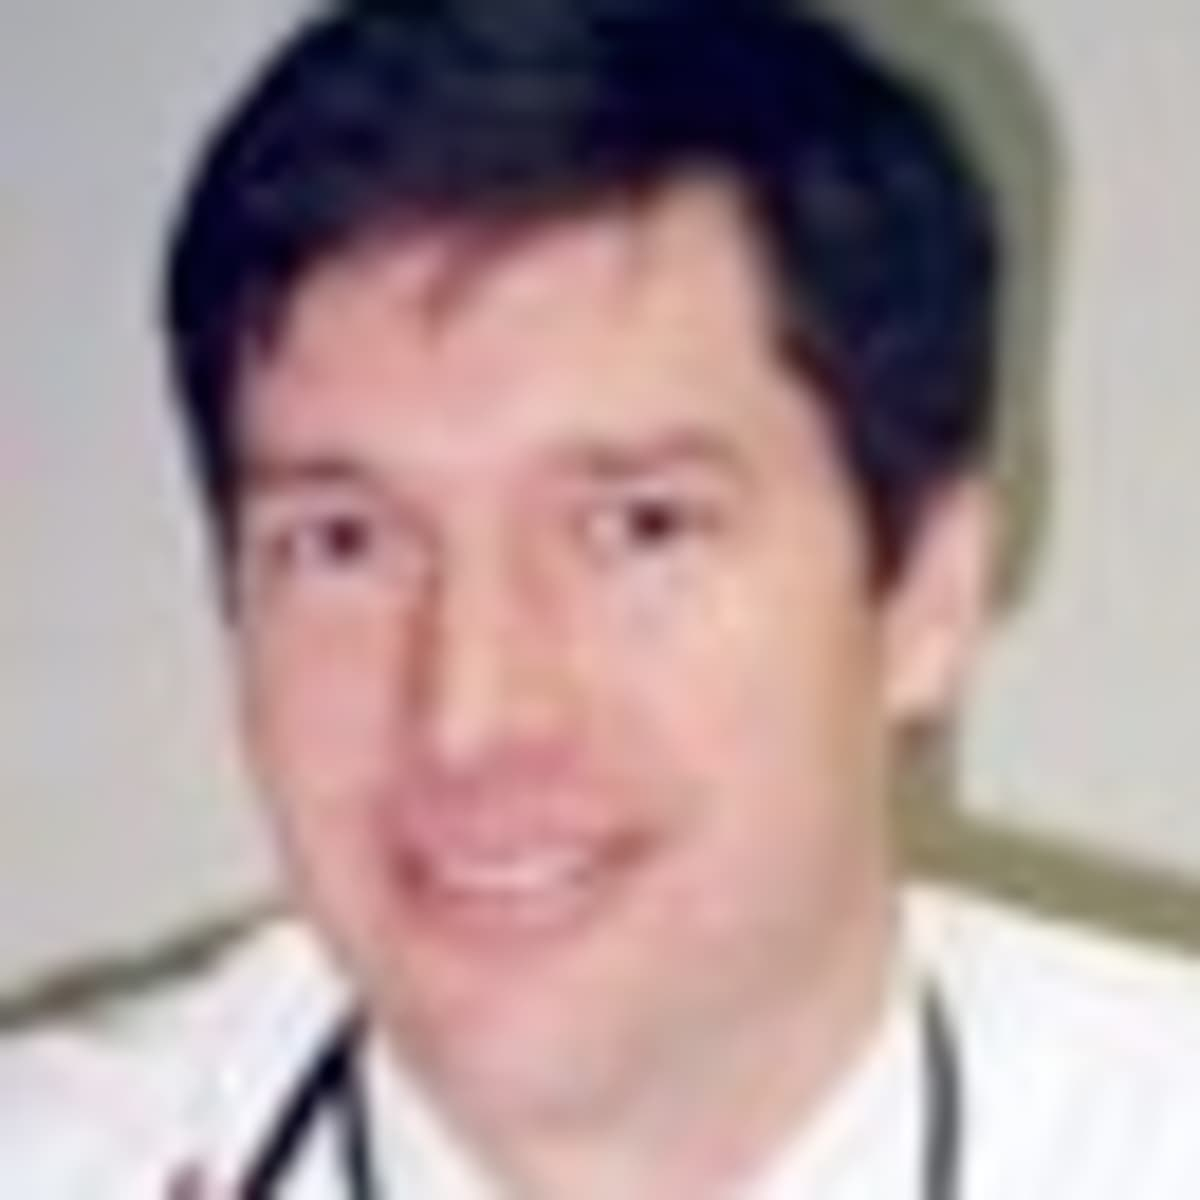 dr john fritz do livingston nj family doctor